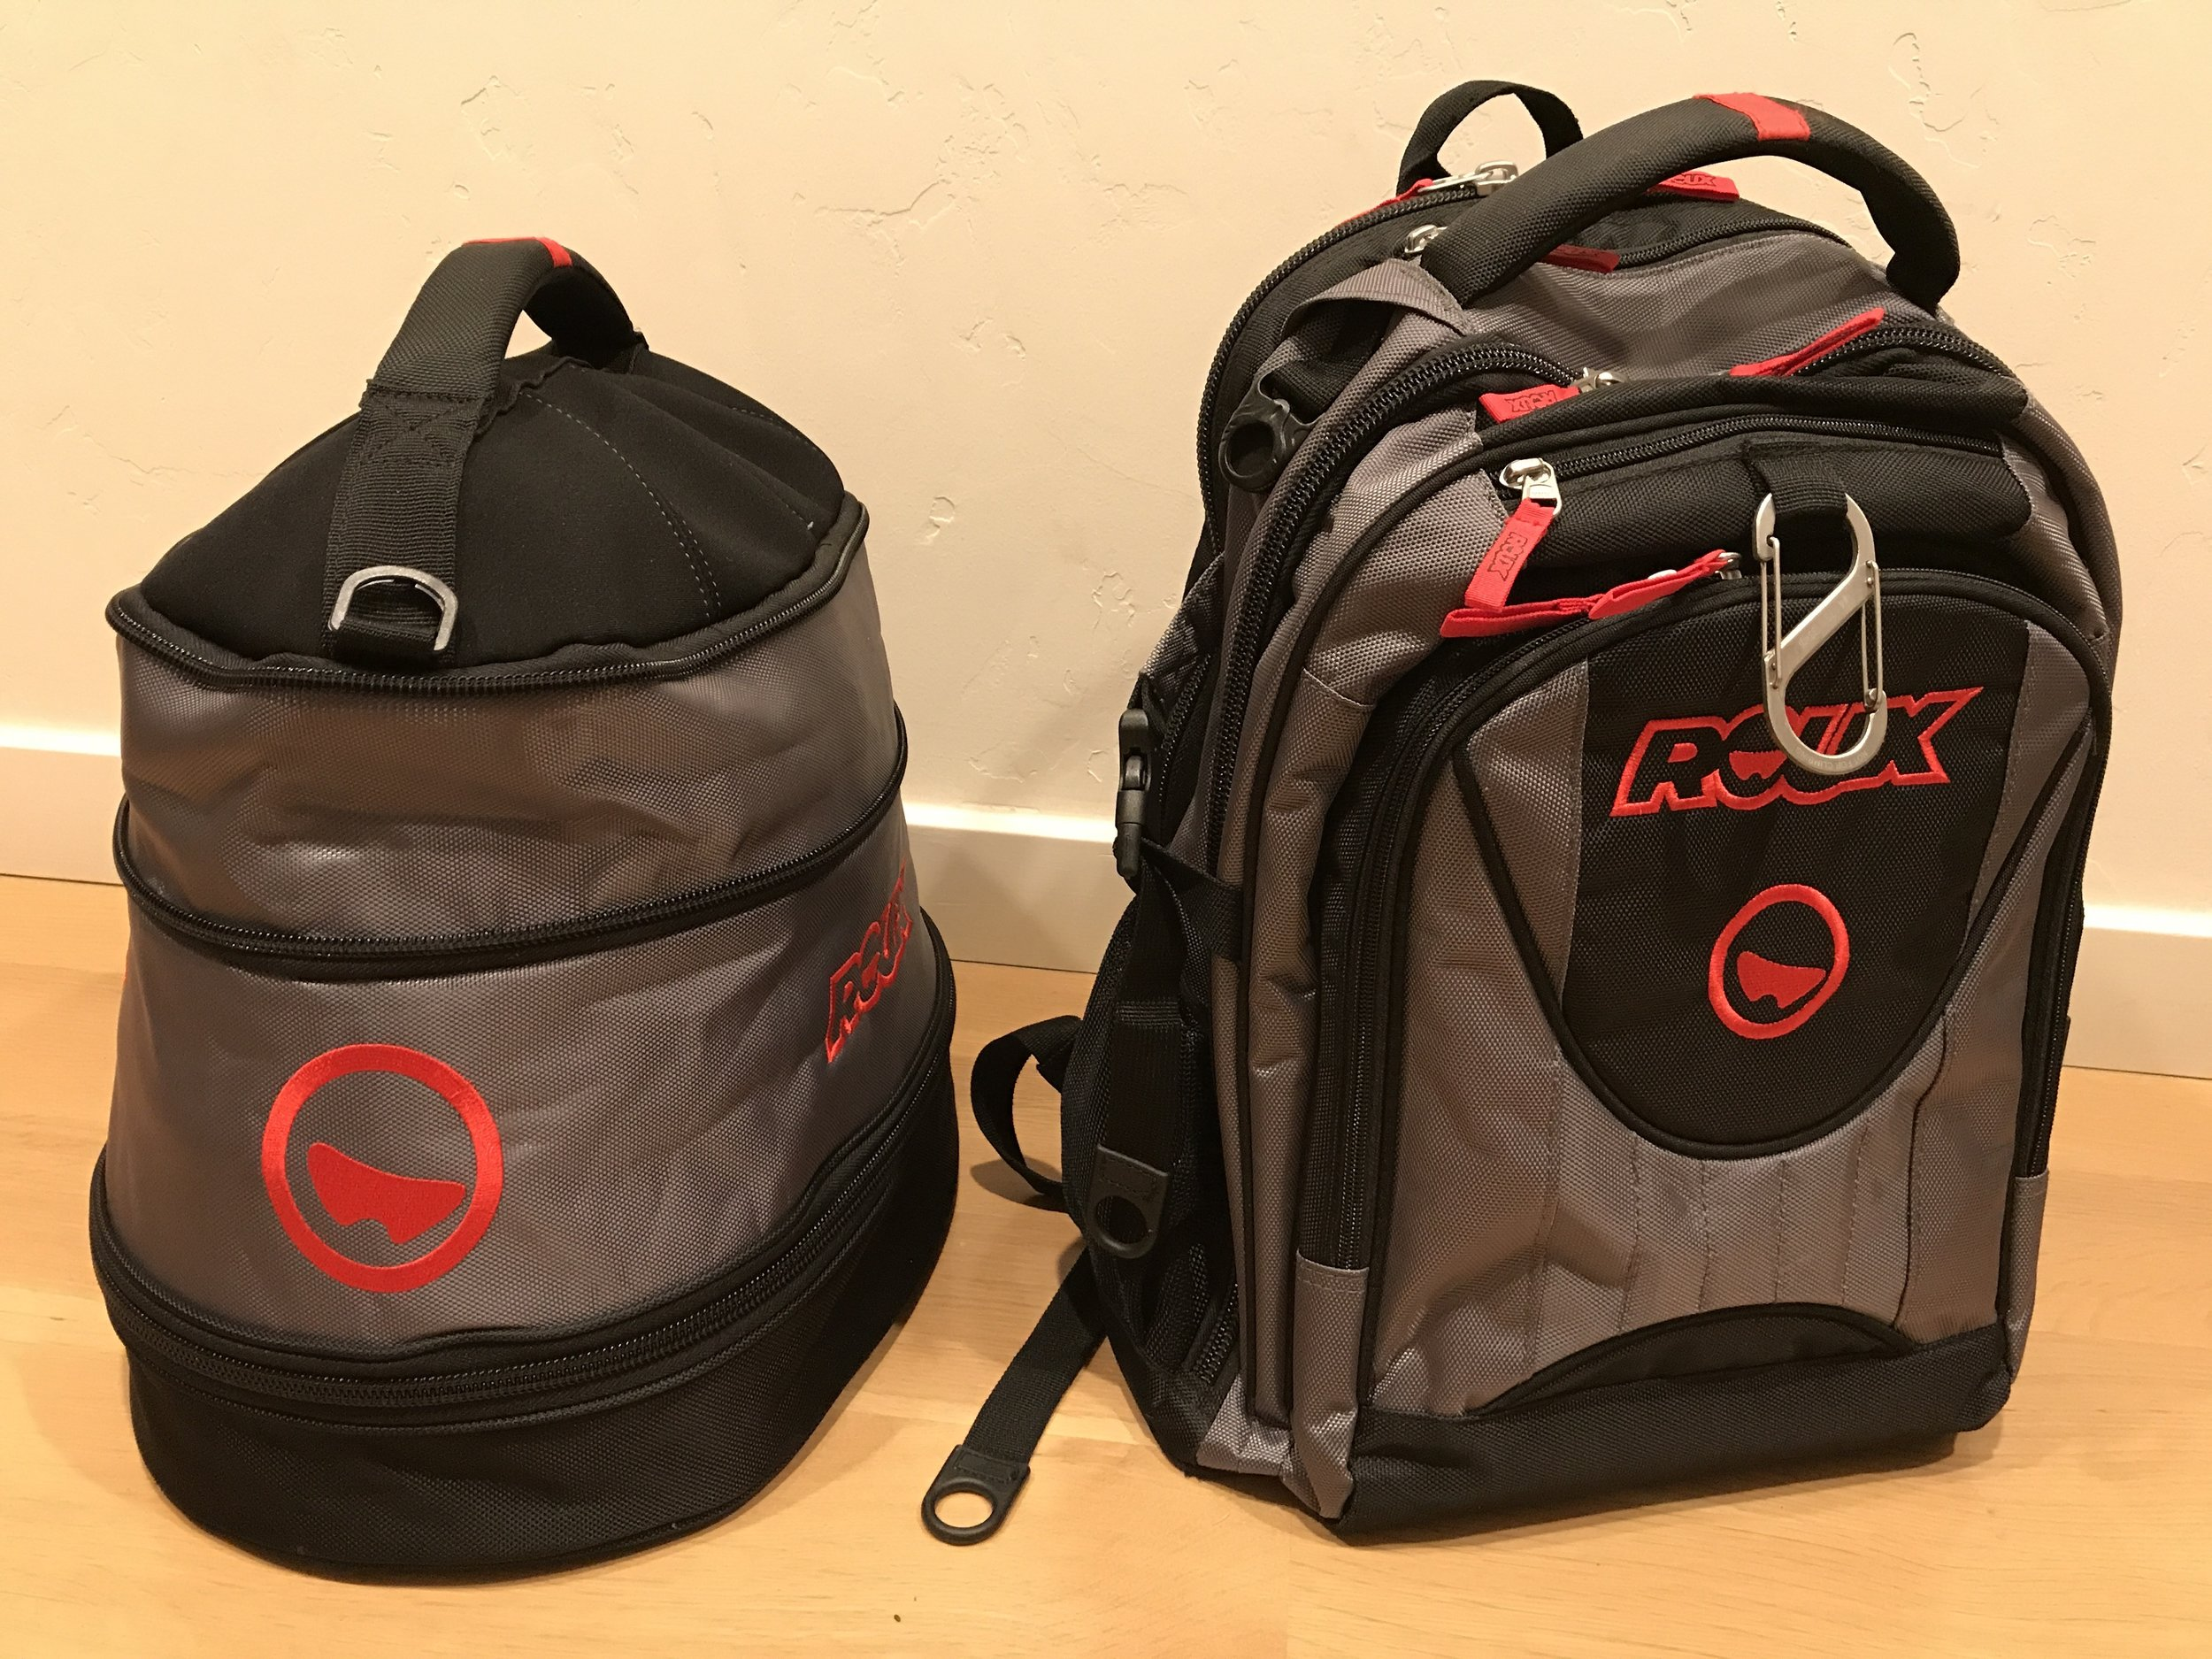 H&N Bag with the Racer Backpack